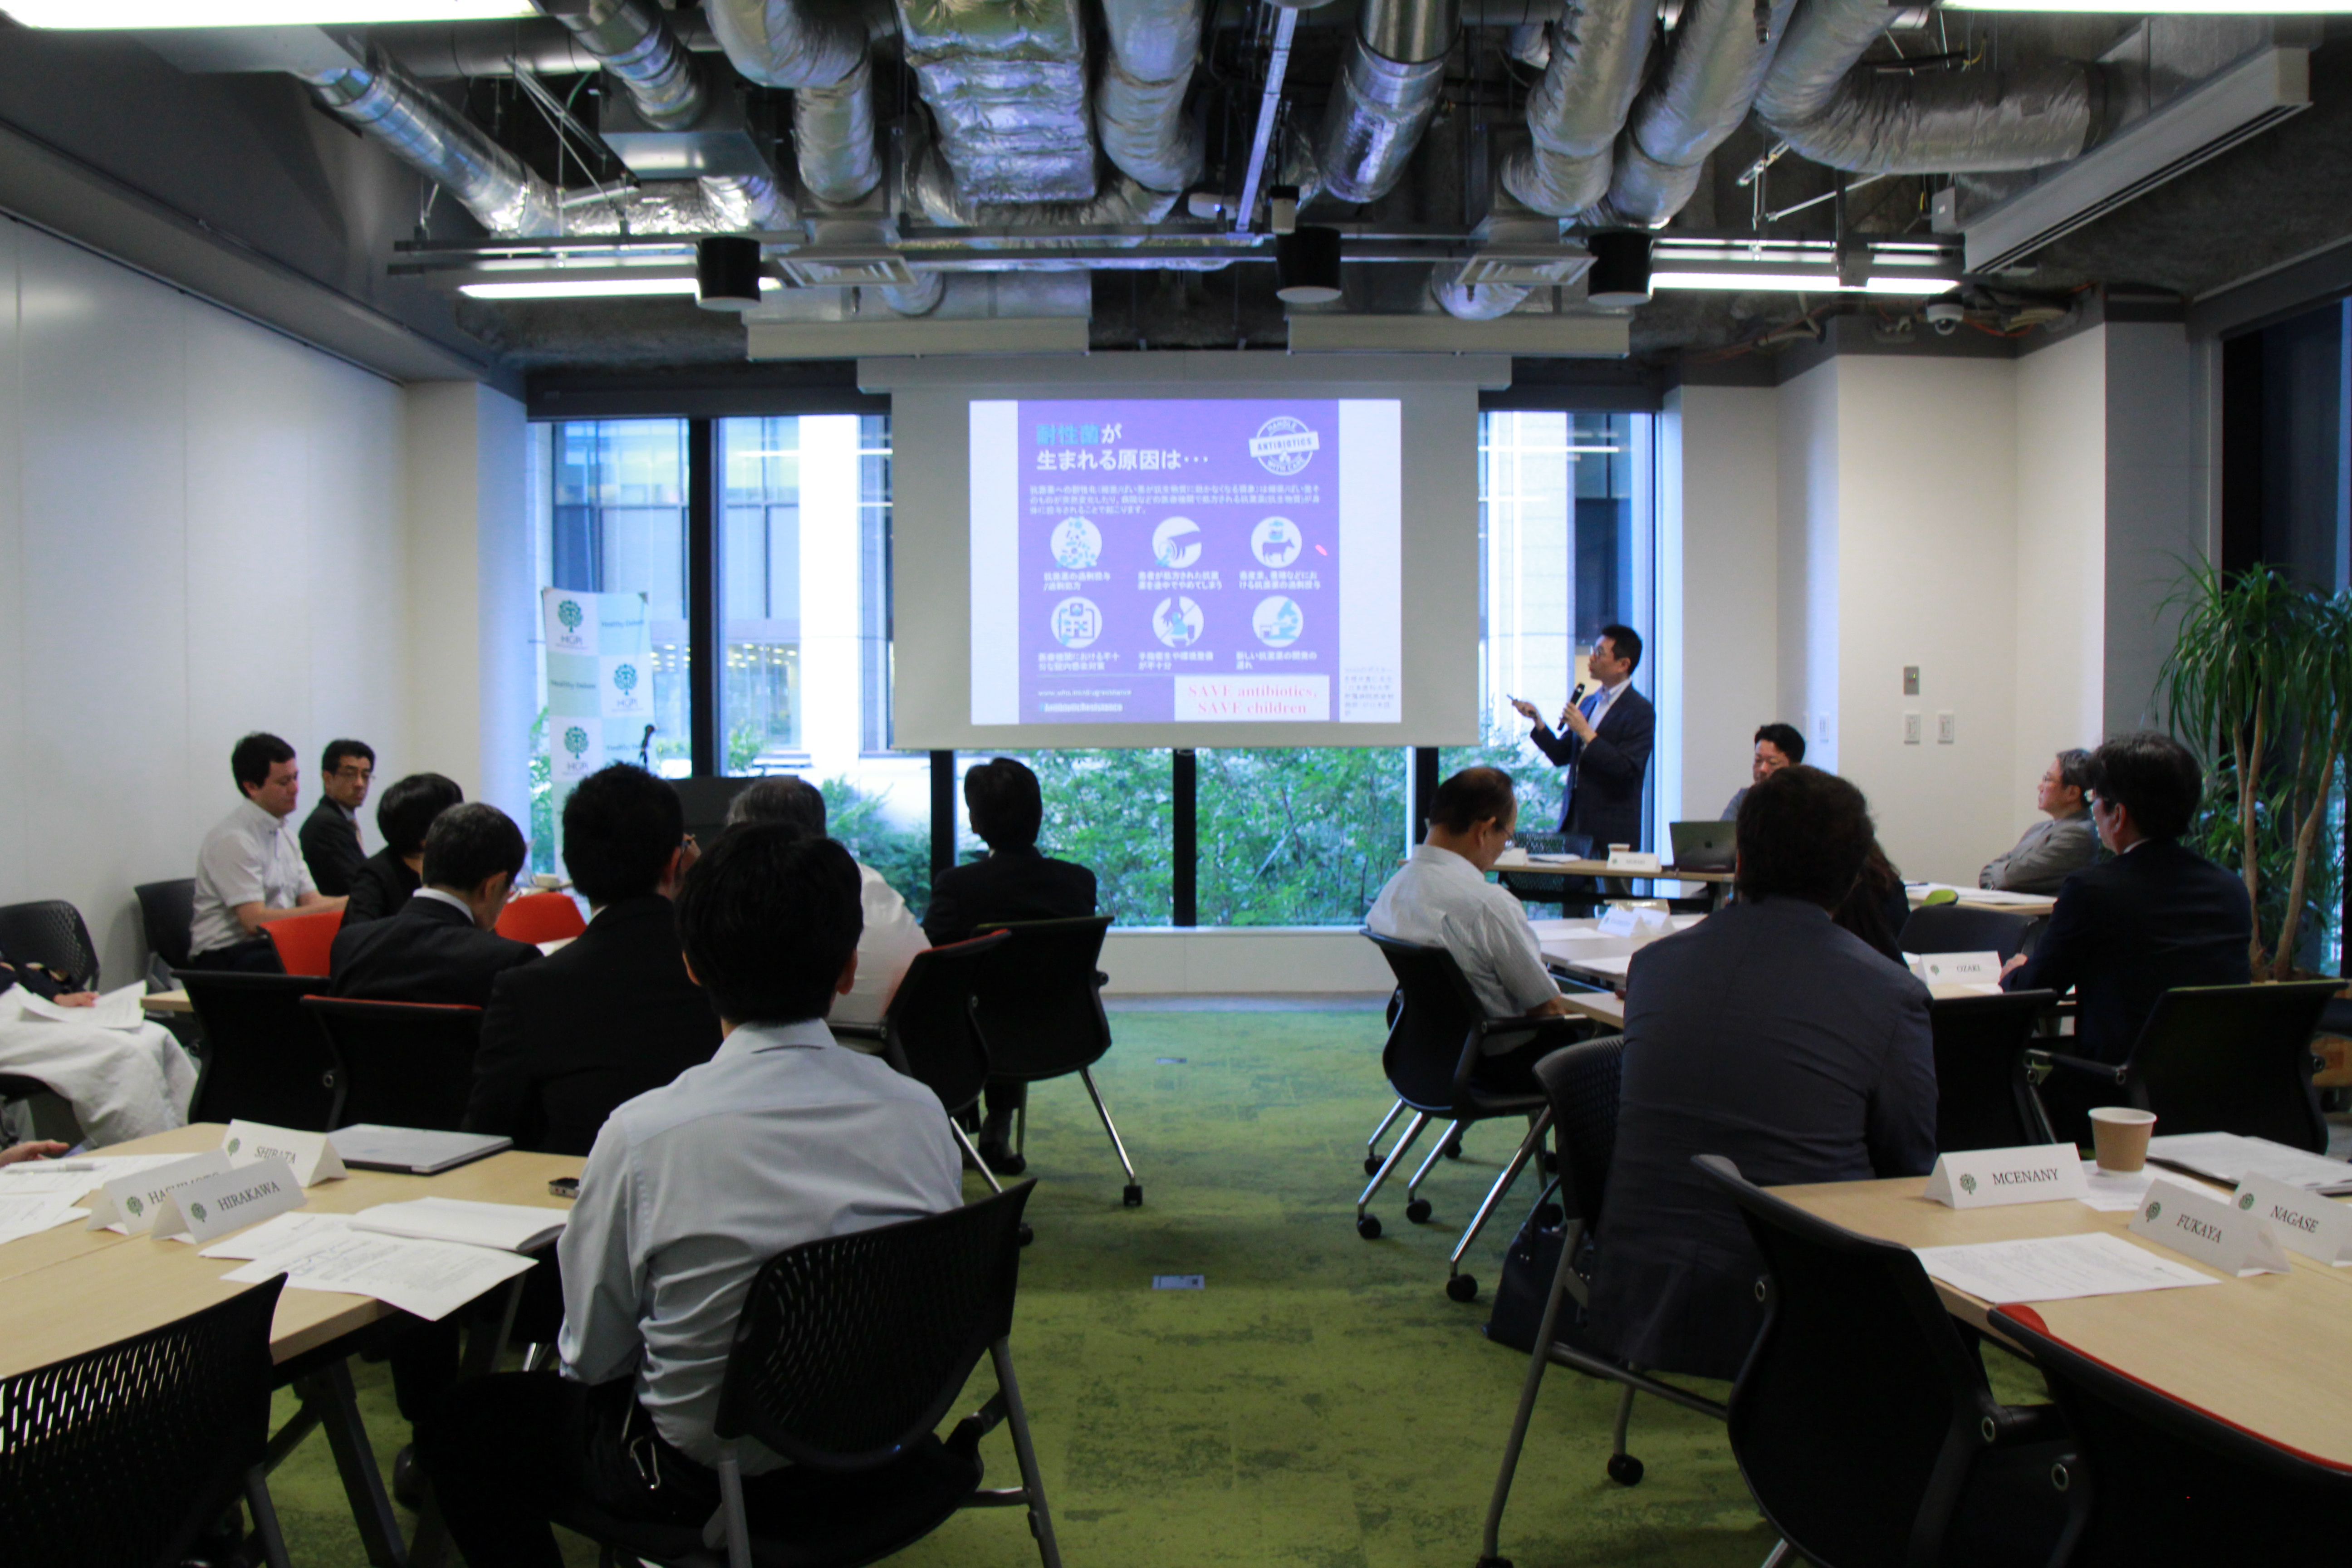 [Event Report] AMR Alliance Japan: Media Briefing (July 26, 2019)